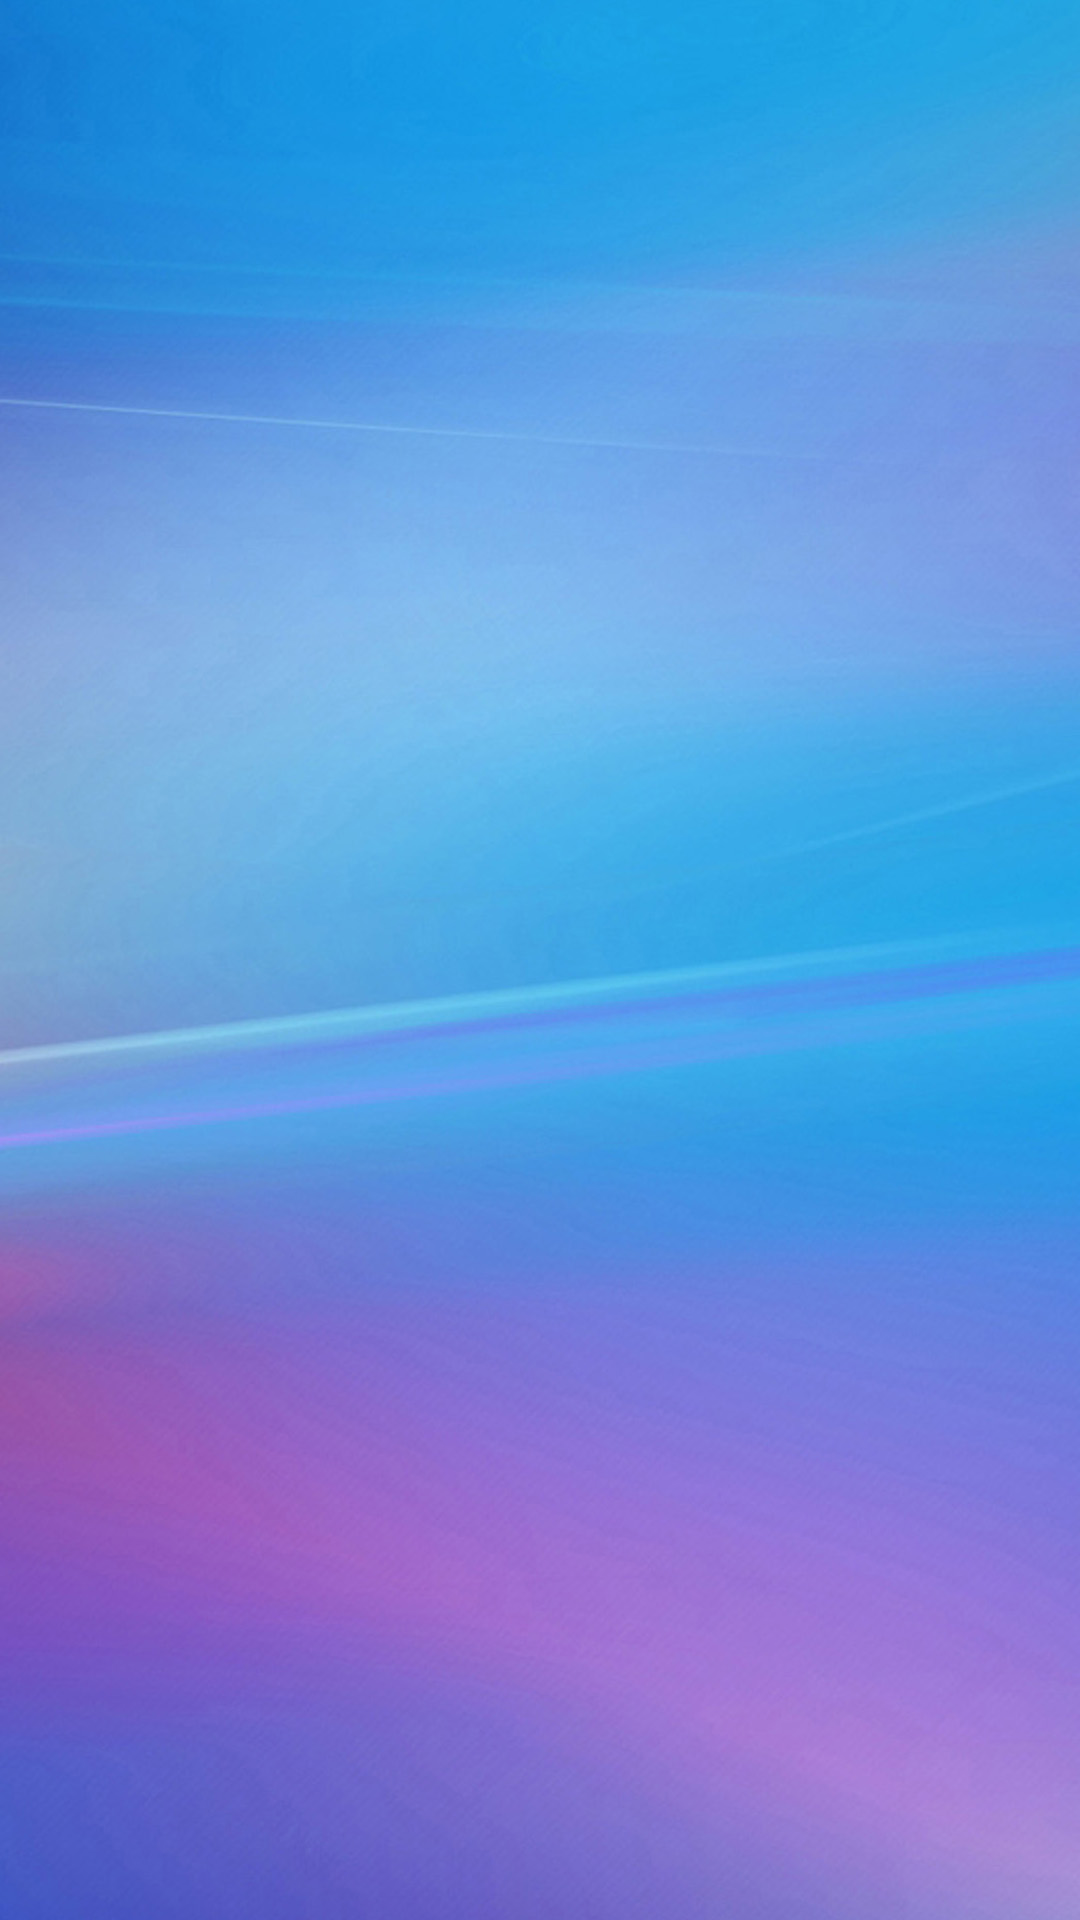 Free Download Abstract Htc One M8 Wallpaper 351 Htc One M8